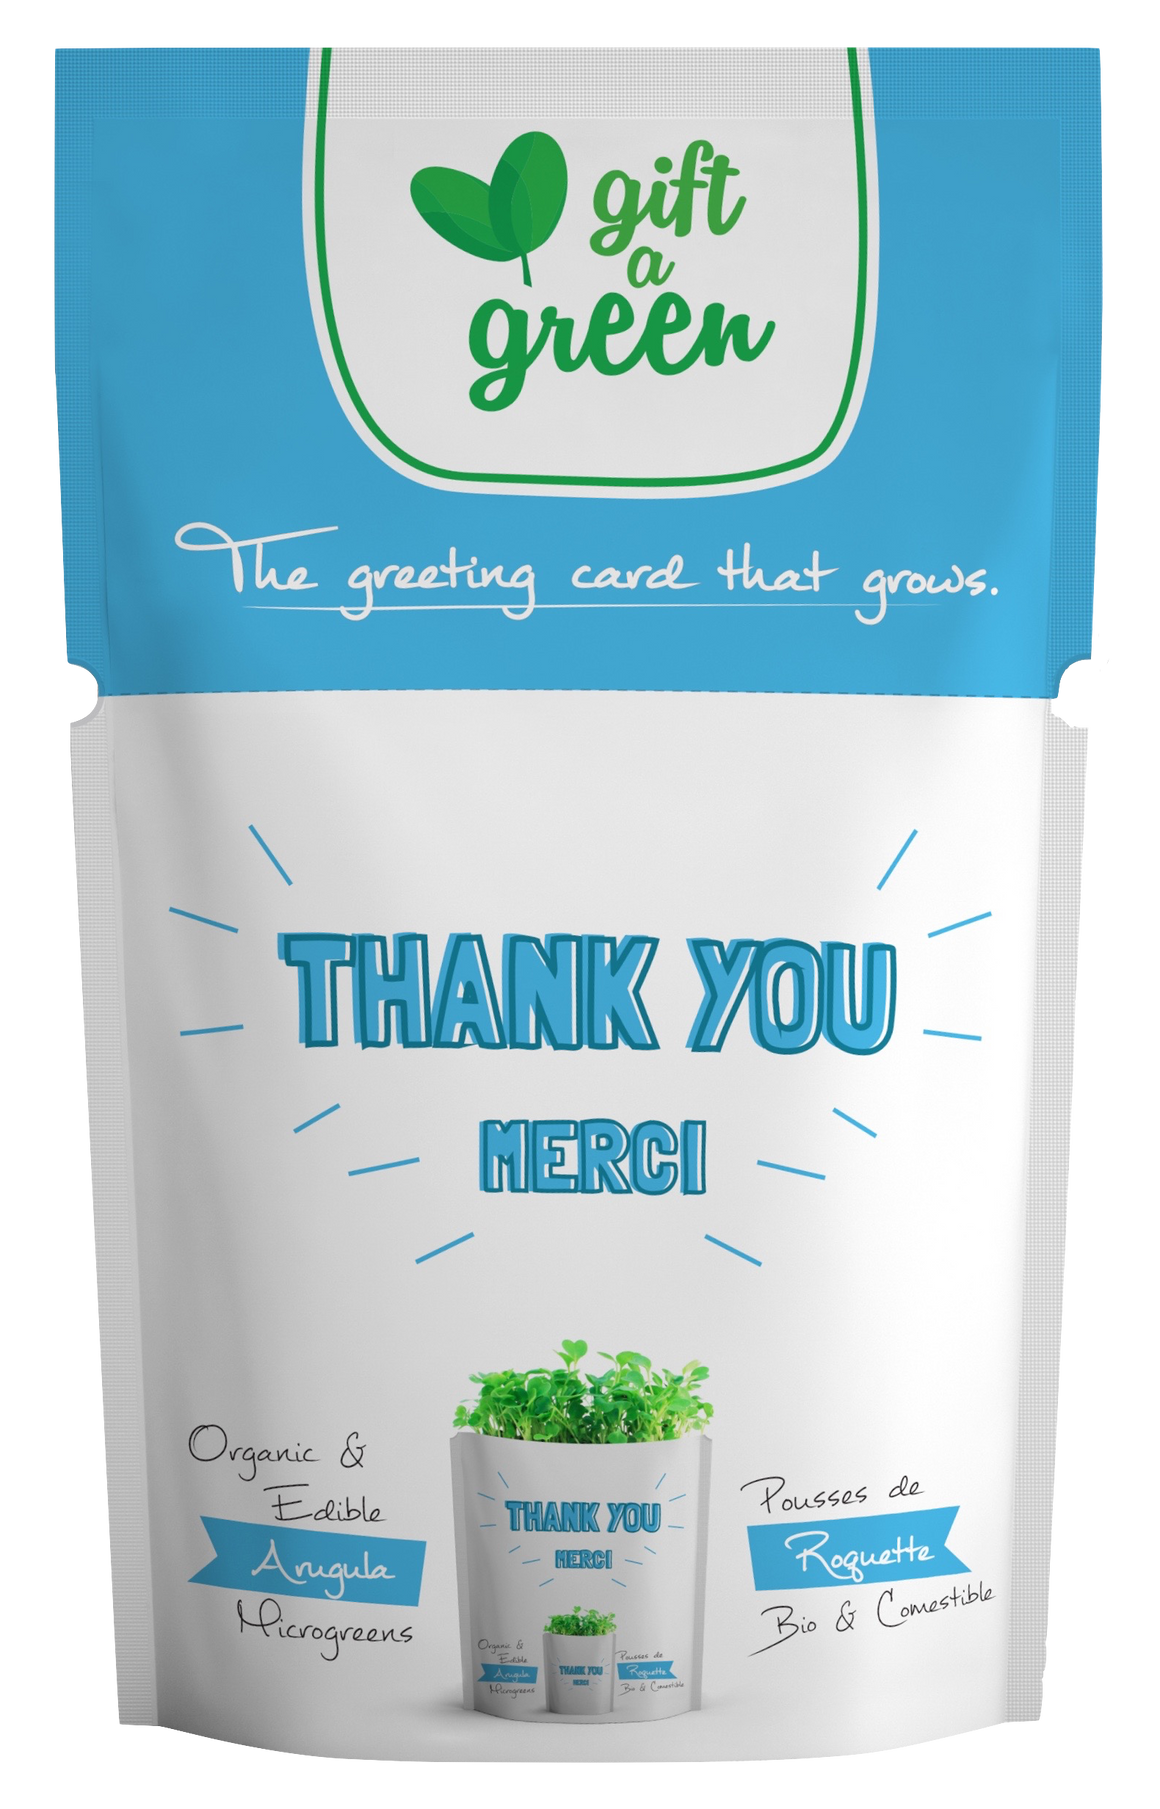 Microgreens Collection | Thank You | Arugula Microgreens - Gift-a-Green